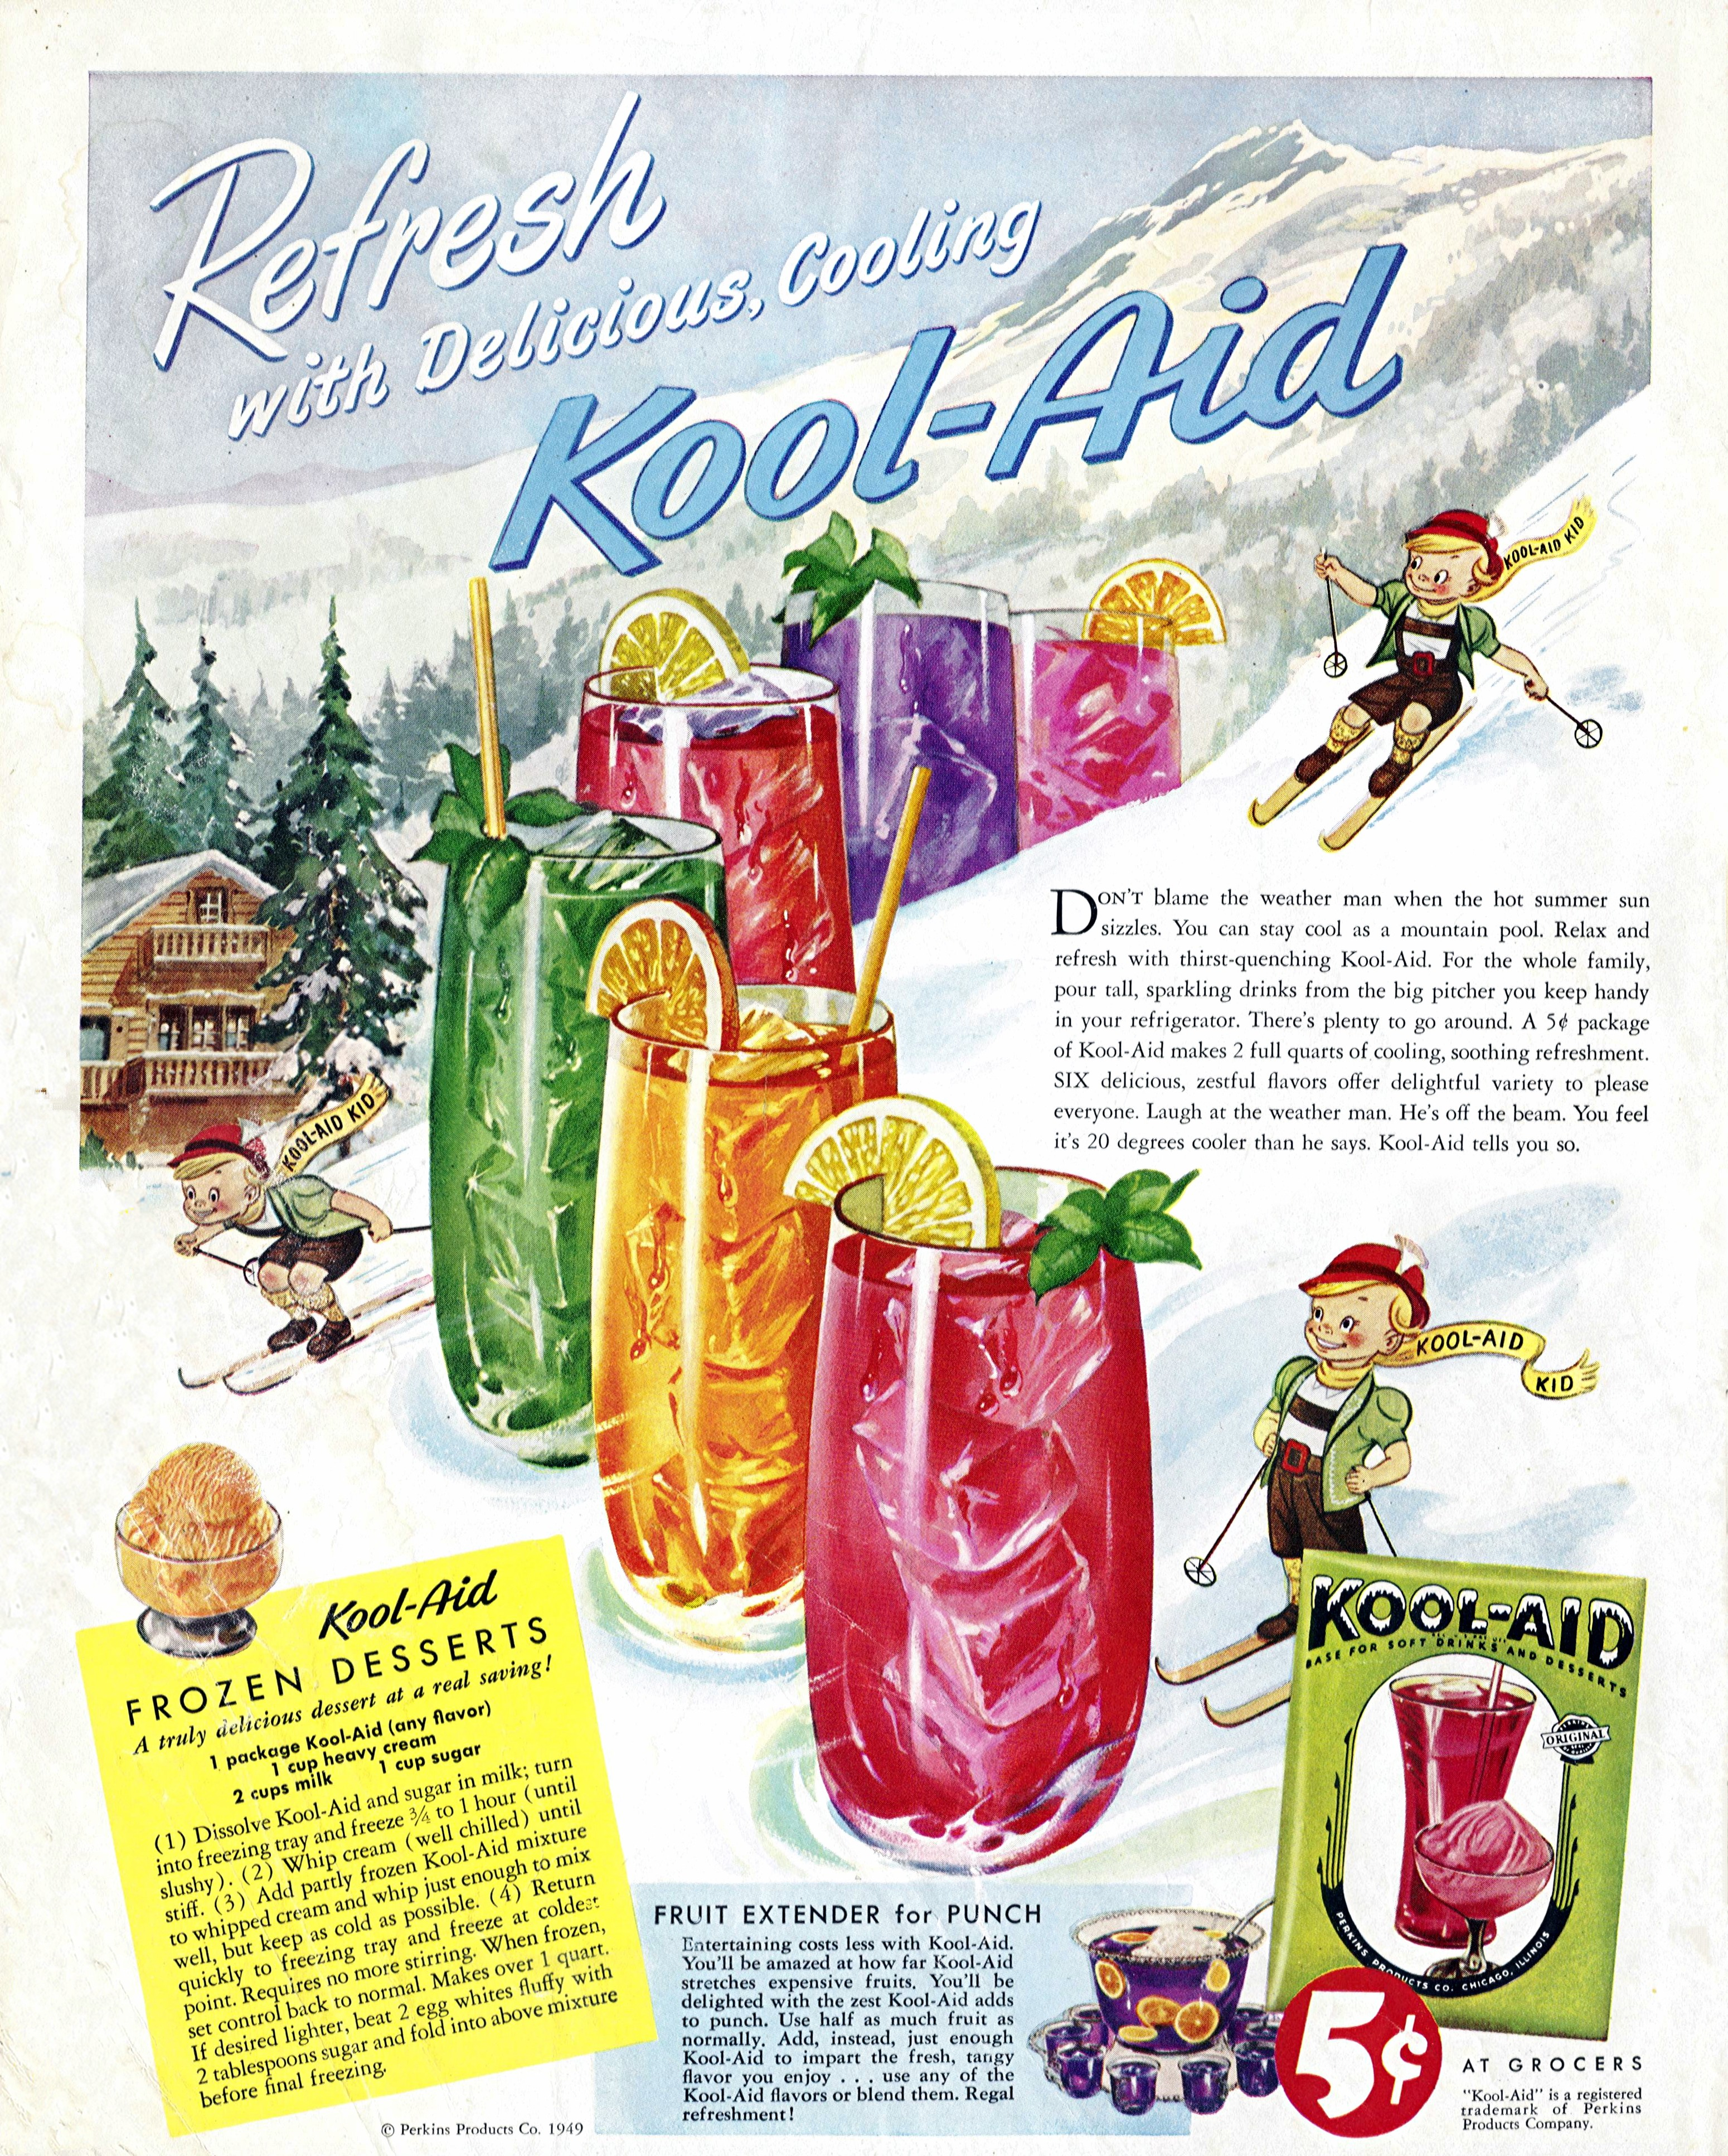 Kool Aid Nail Polish Stains: Refresh With Delicious Cooling, Kool-Aid